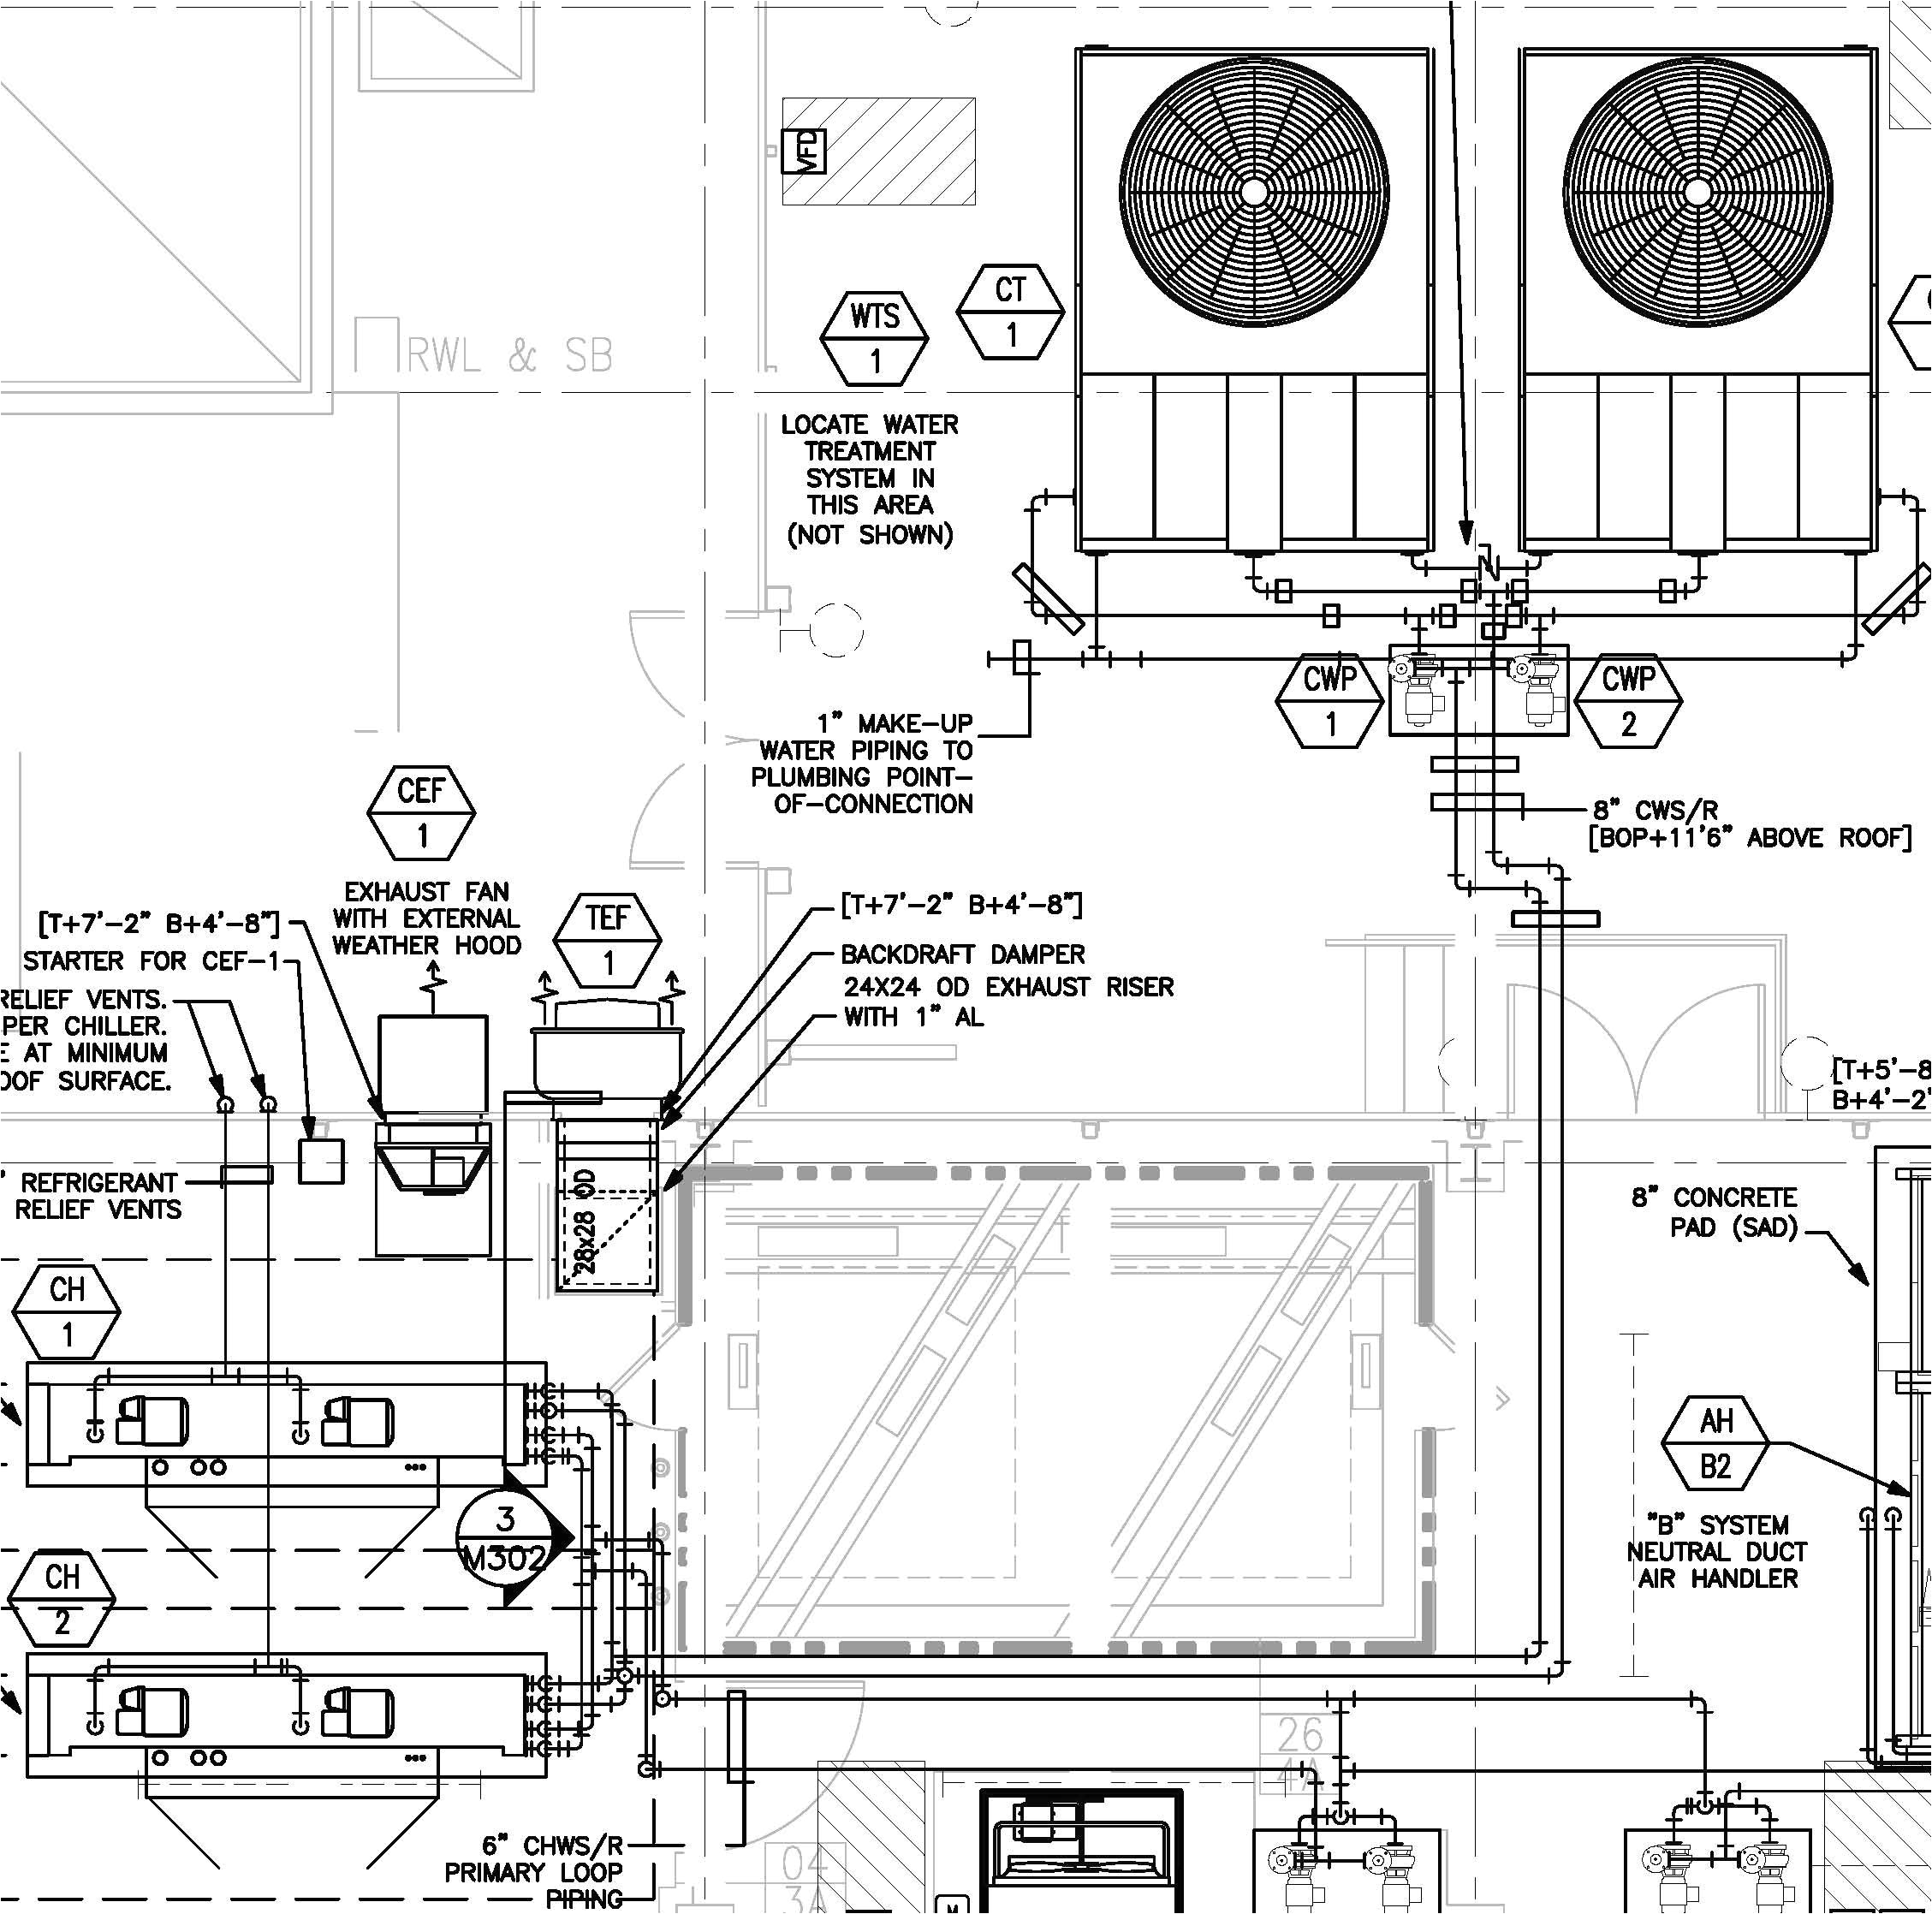 gvd 6 wiring diagram